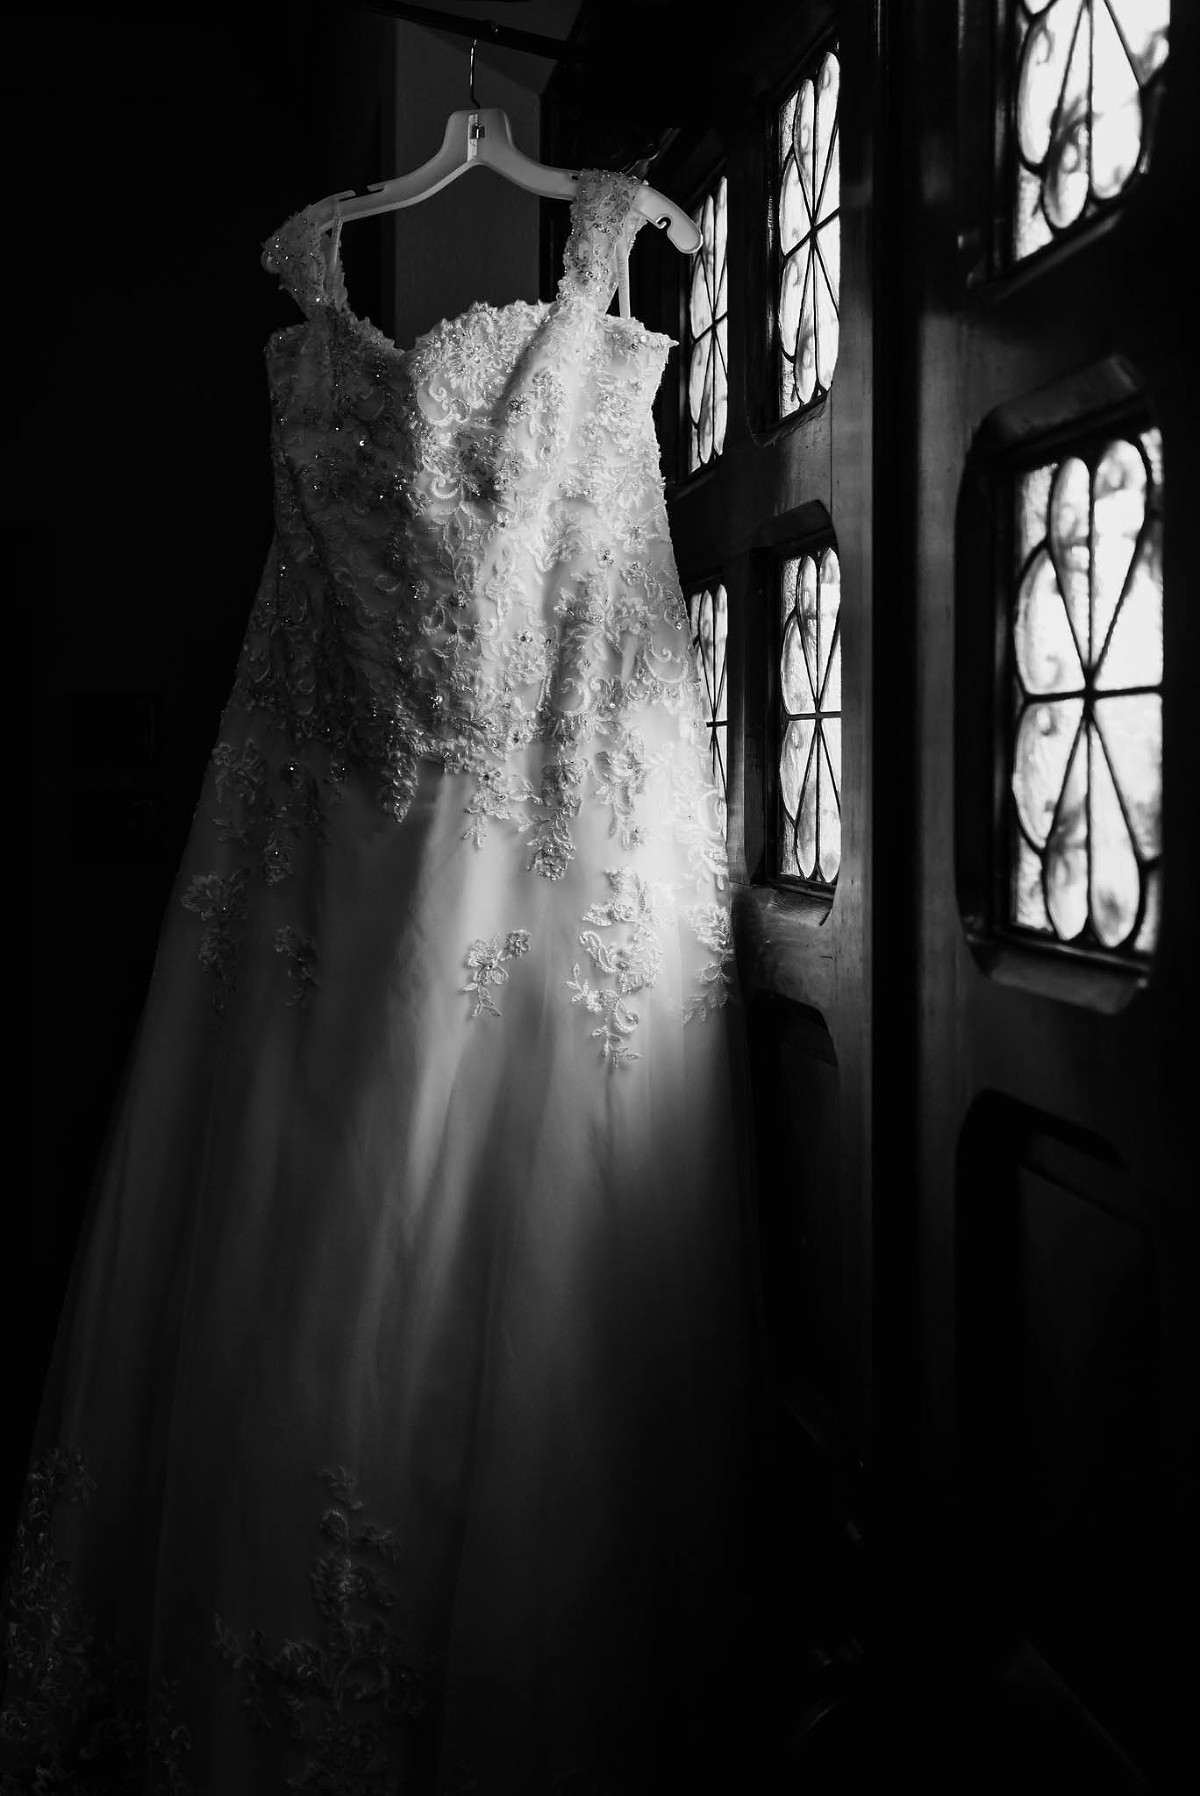 Bridal gown hanging by window light at St. Joseph Catholic Church in Garrett, Indiana, wedding photography by Kasey Wallace Photography,